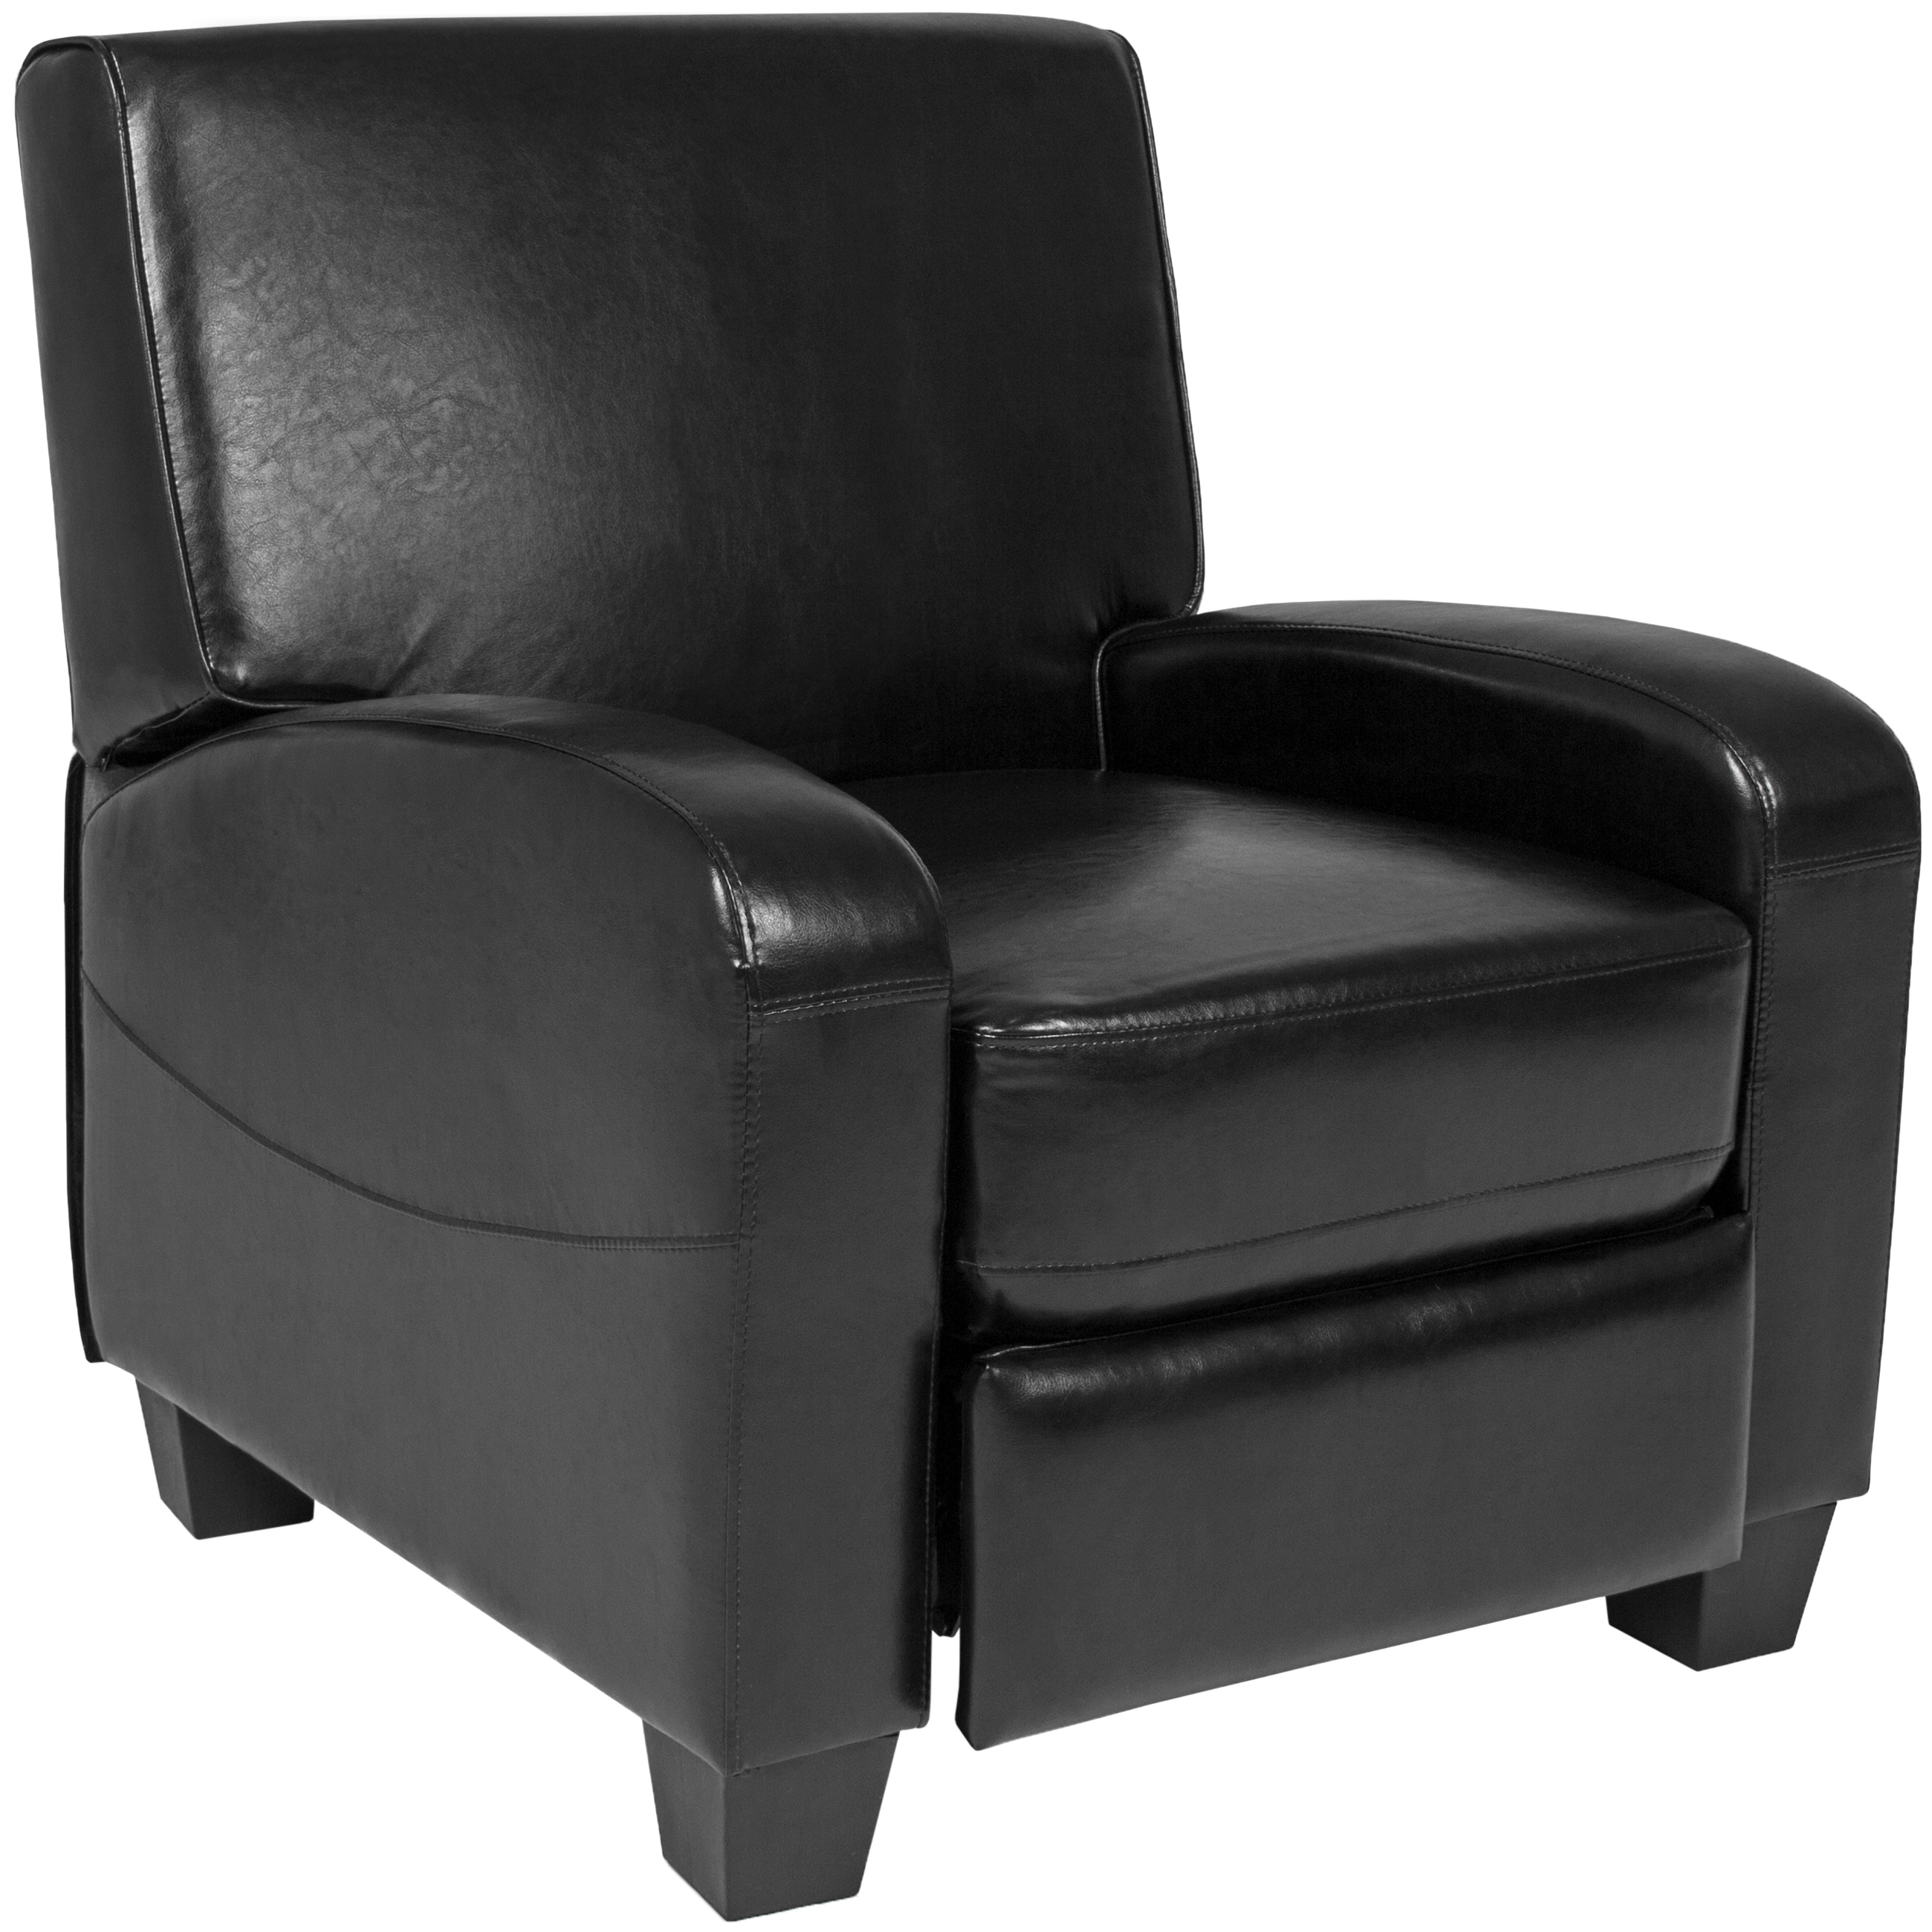 Best Choice Products Padded PU Leather Home Theater Recliner Chair by